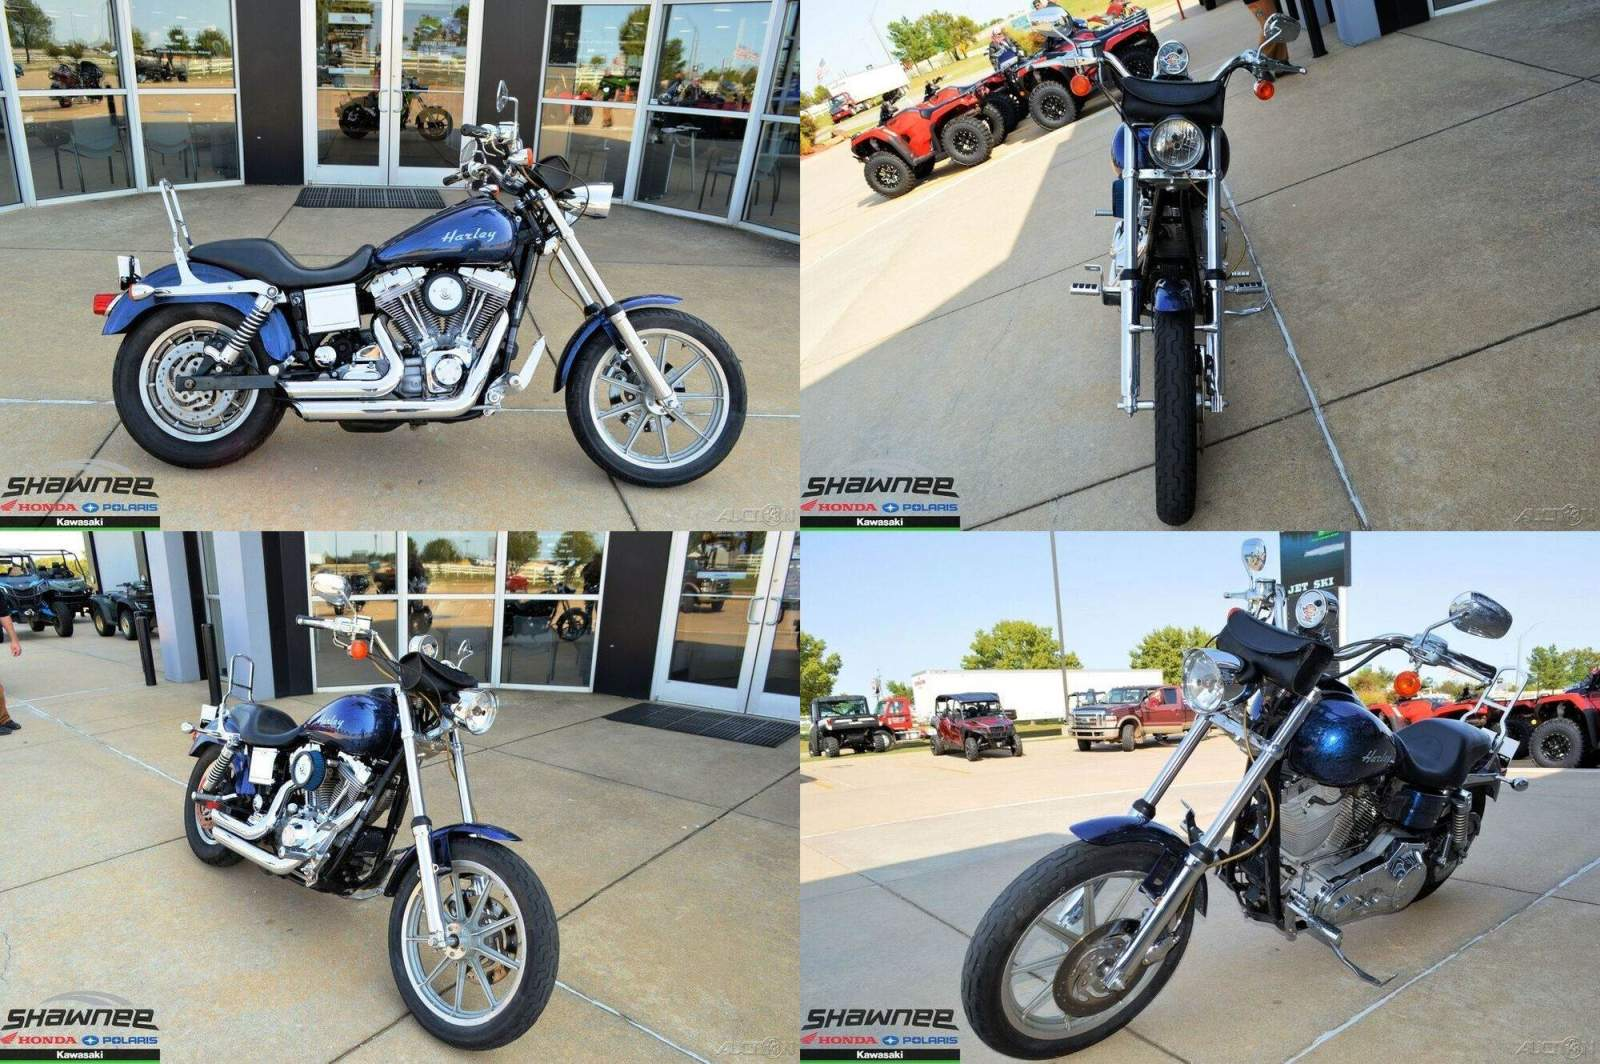 2005 Harley-Davidson Dyna Super Glide Custom Blue used for sale craigslist